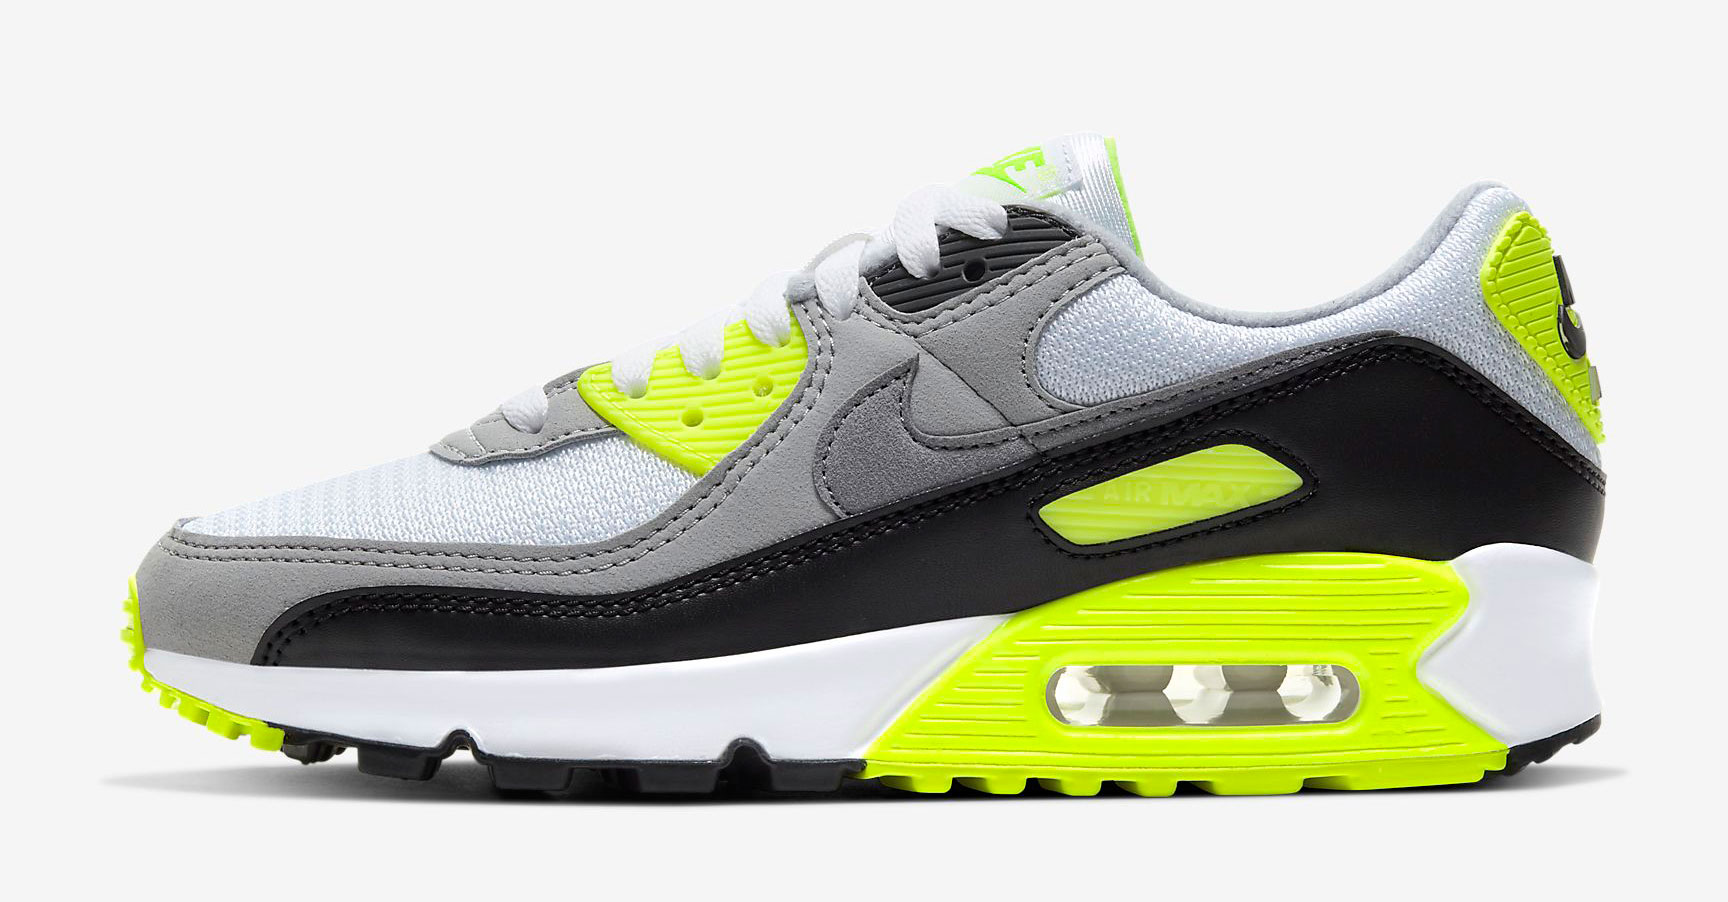 nike-air-max-90-og-volt-grey-2